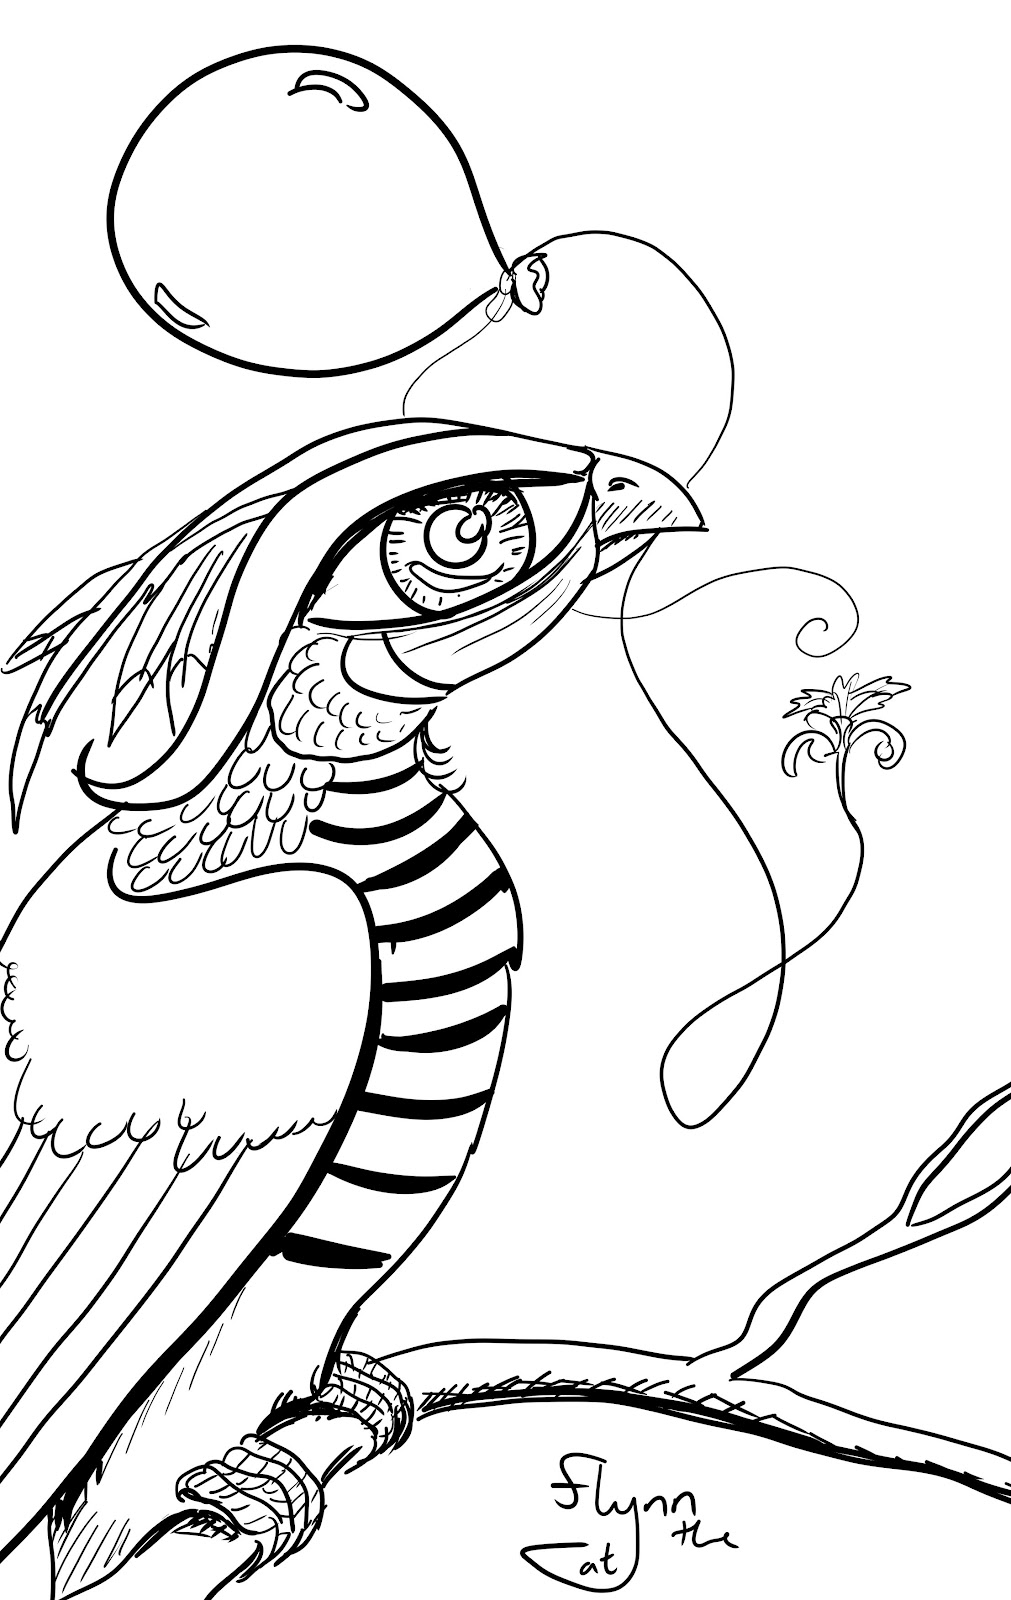 sea serpent coloring pages - photo#27